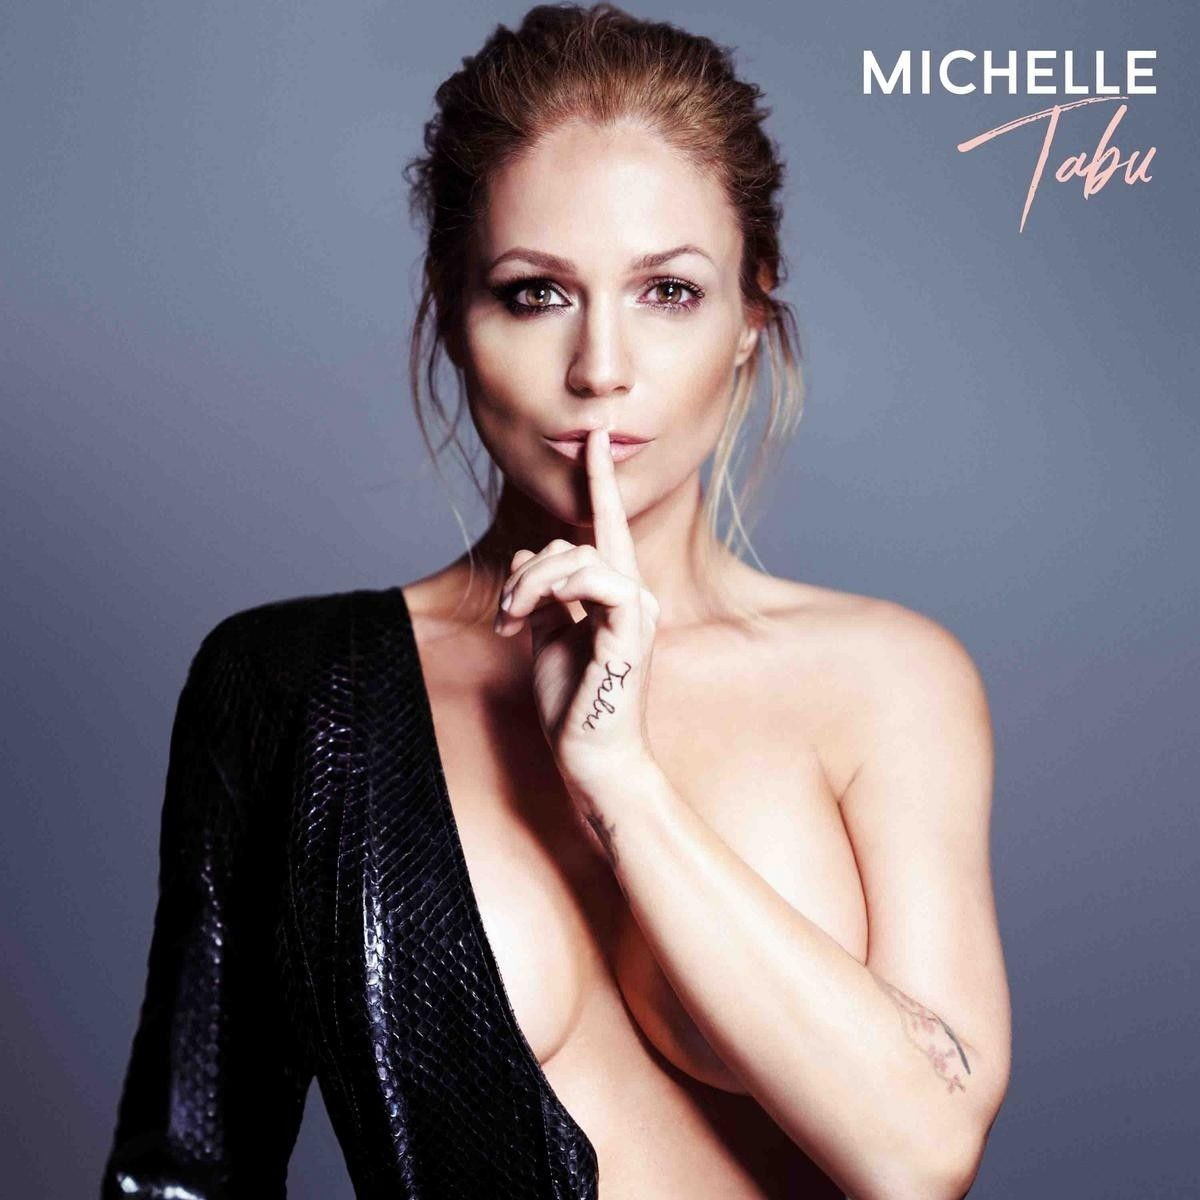 Michelle - Tabu album cover